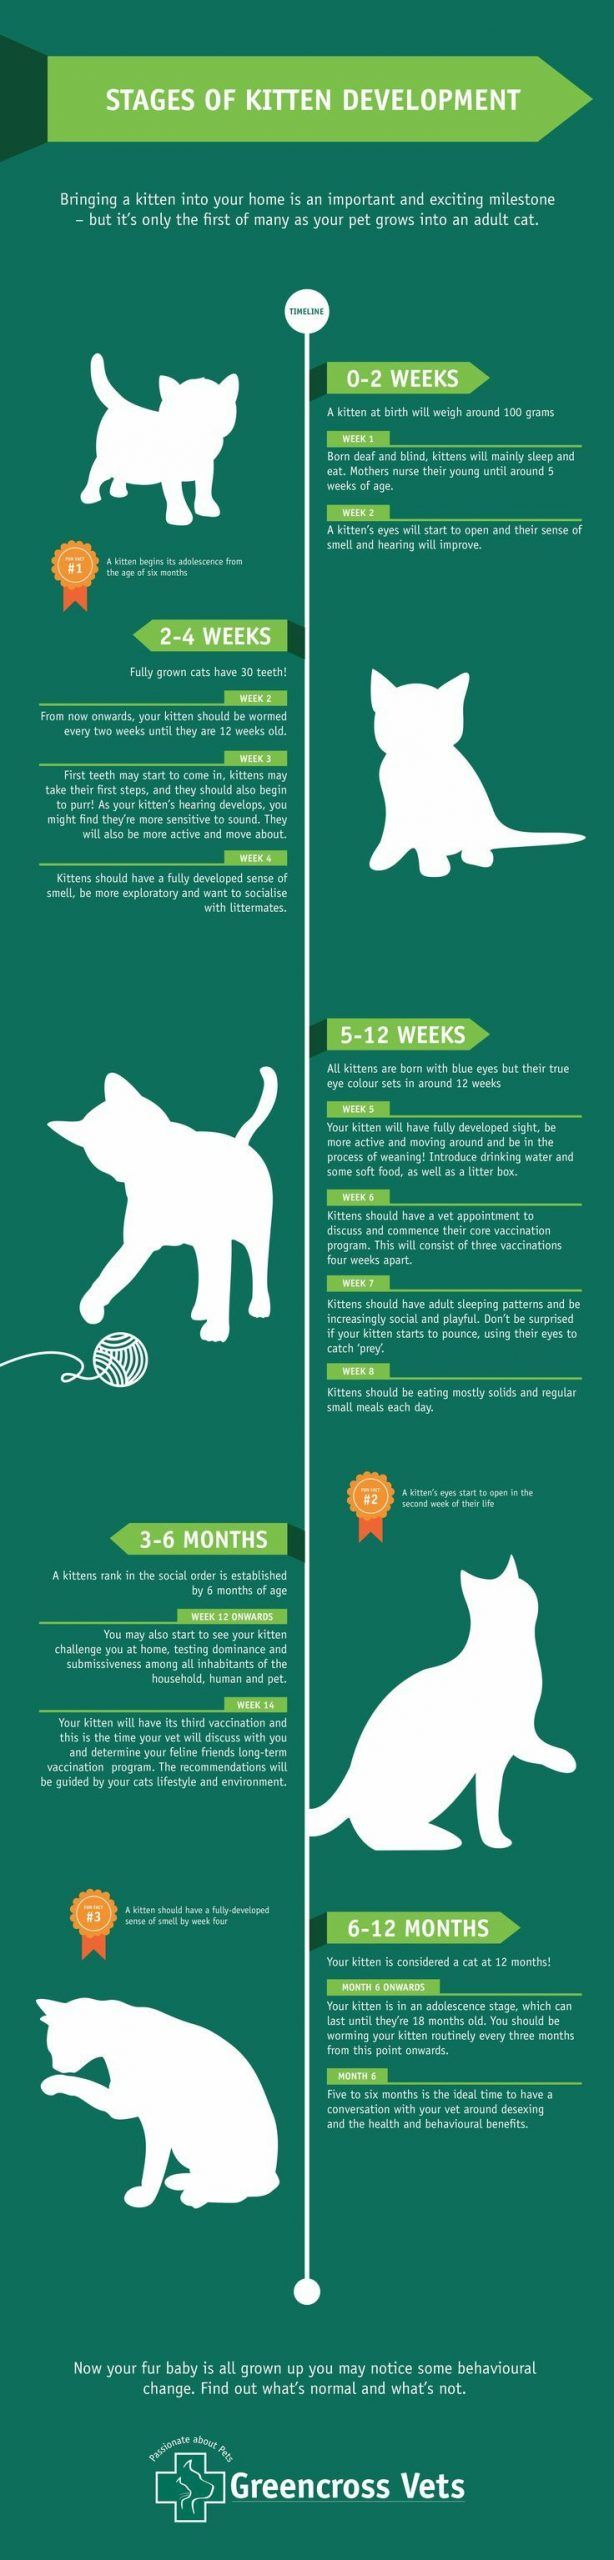 Infographic Of The Stages Of Kitten Development Baby Development Stages Development Infograp In 2020 Baby Development Stages Of Baby Development Kitten Care Newborn